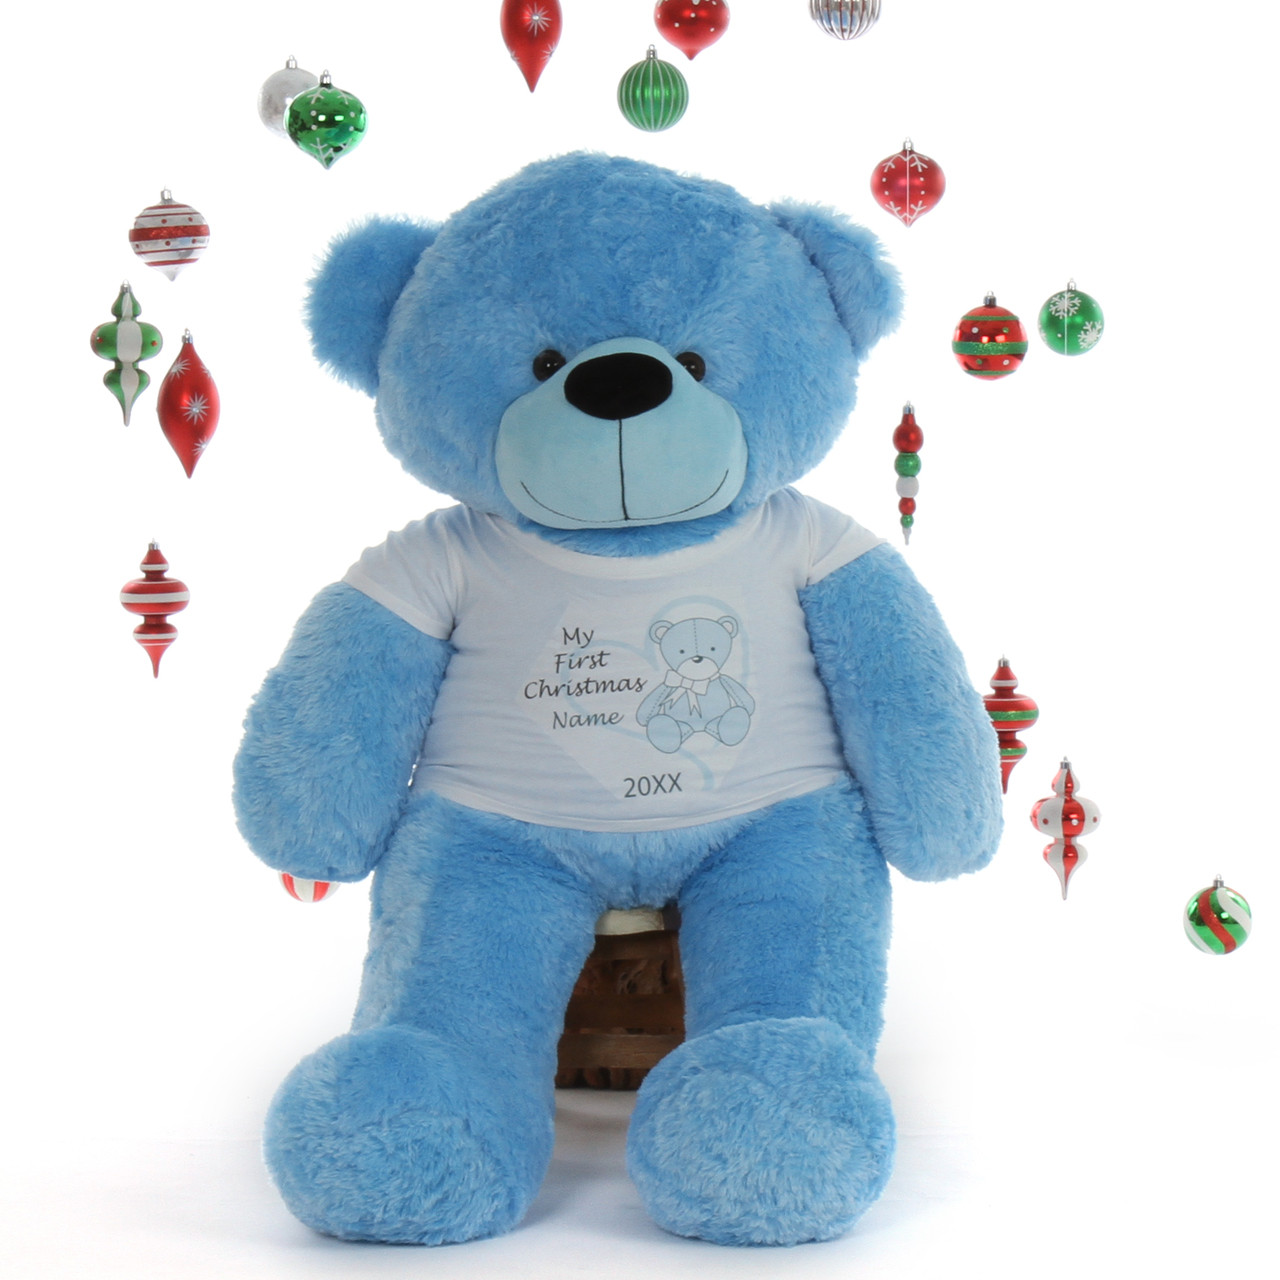 4 foot Personalized Teddy Bear Life Size  Blue Happy Cuddles with 'My First Christmas'  T-shirt